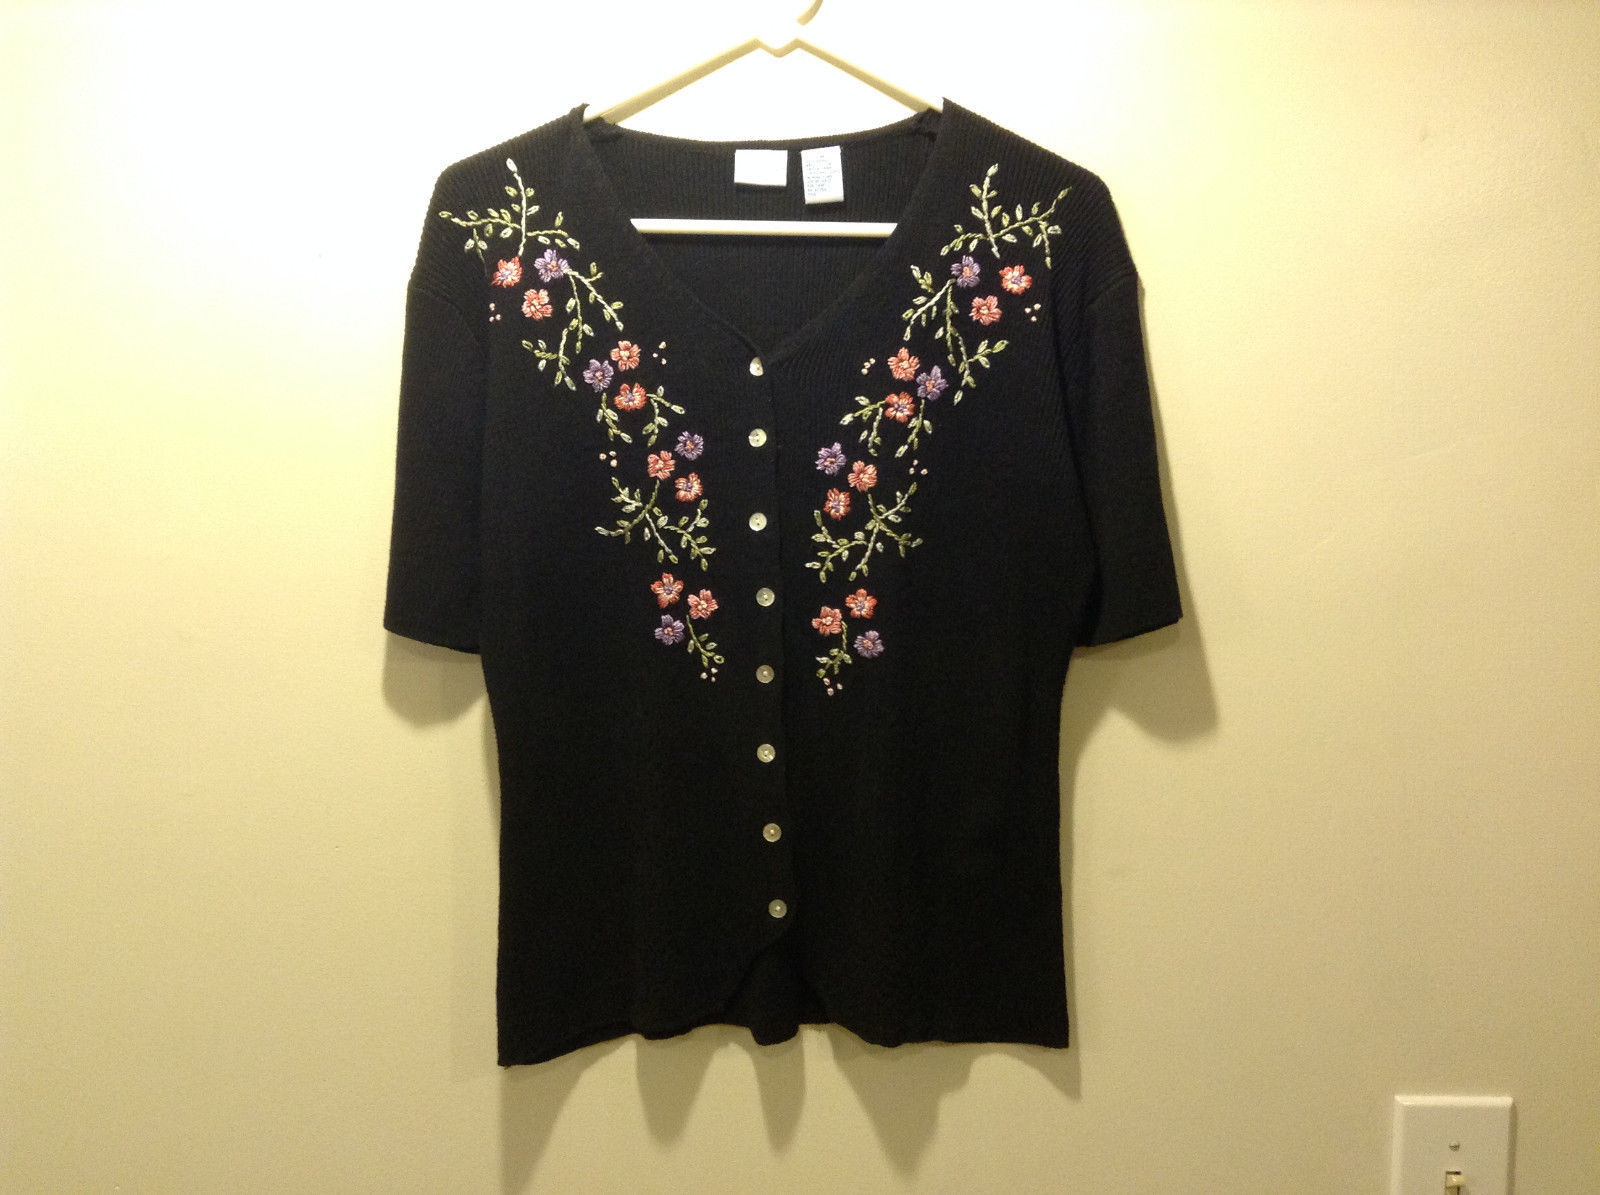 Ship n' Shore Womens Size M Cardigan Sweater Black Ribbed Knit Floral Embroidery